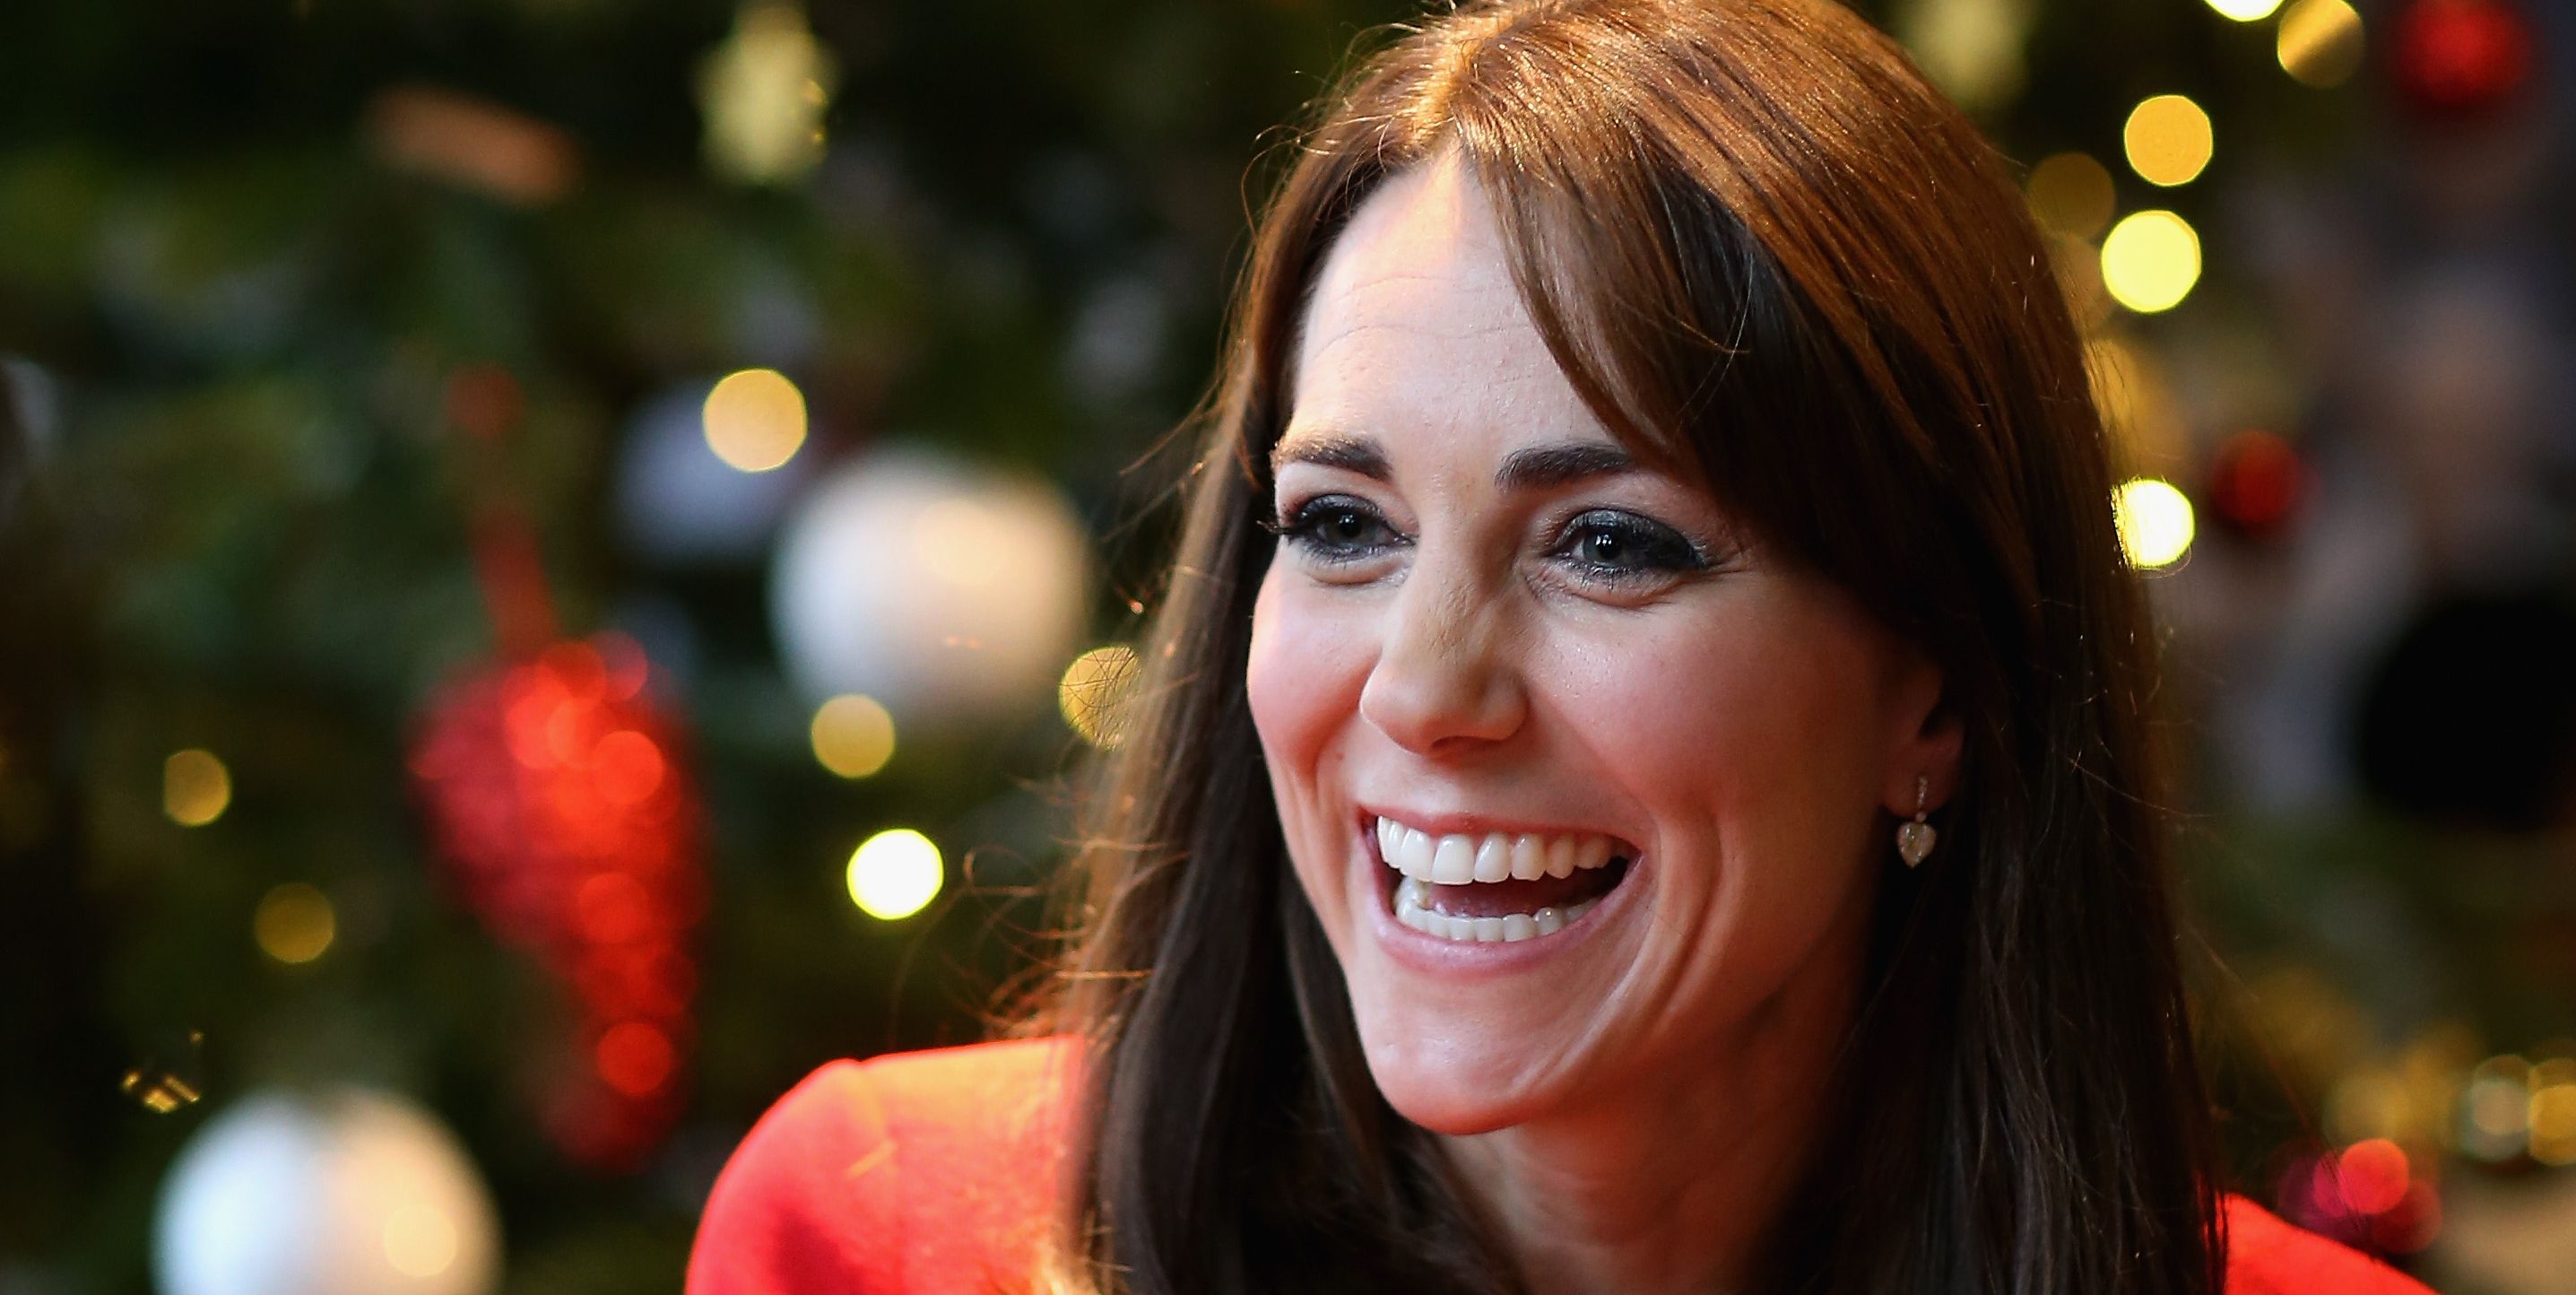 12 Royal Family Christmas Traditions You've Likely Never Heard Of